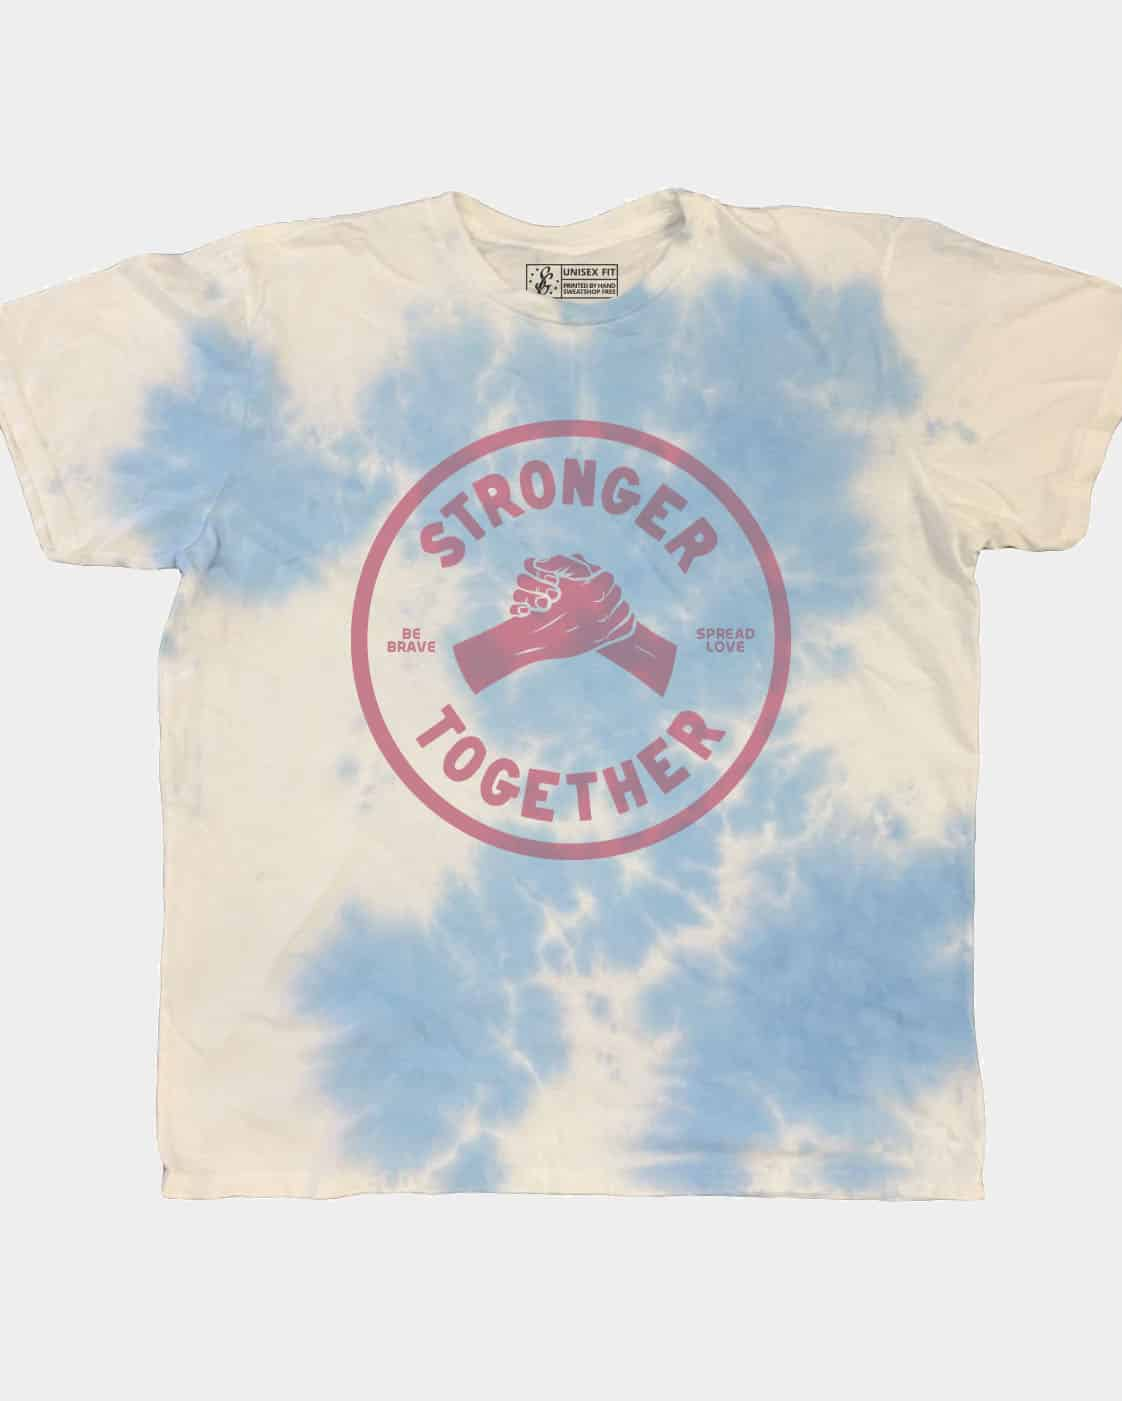 SOLIDARITY SERIES No. 1: Stronger Together Cloud Tie Dye